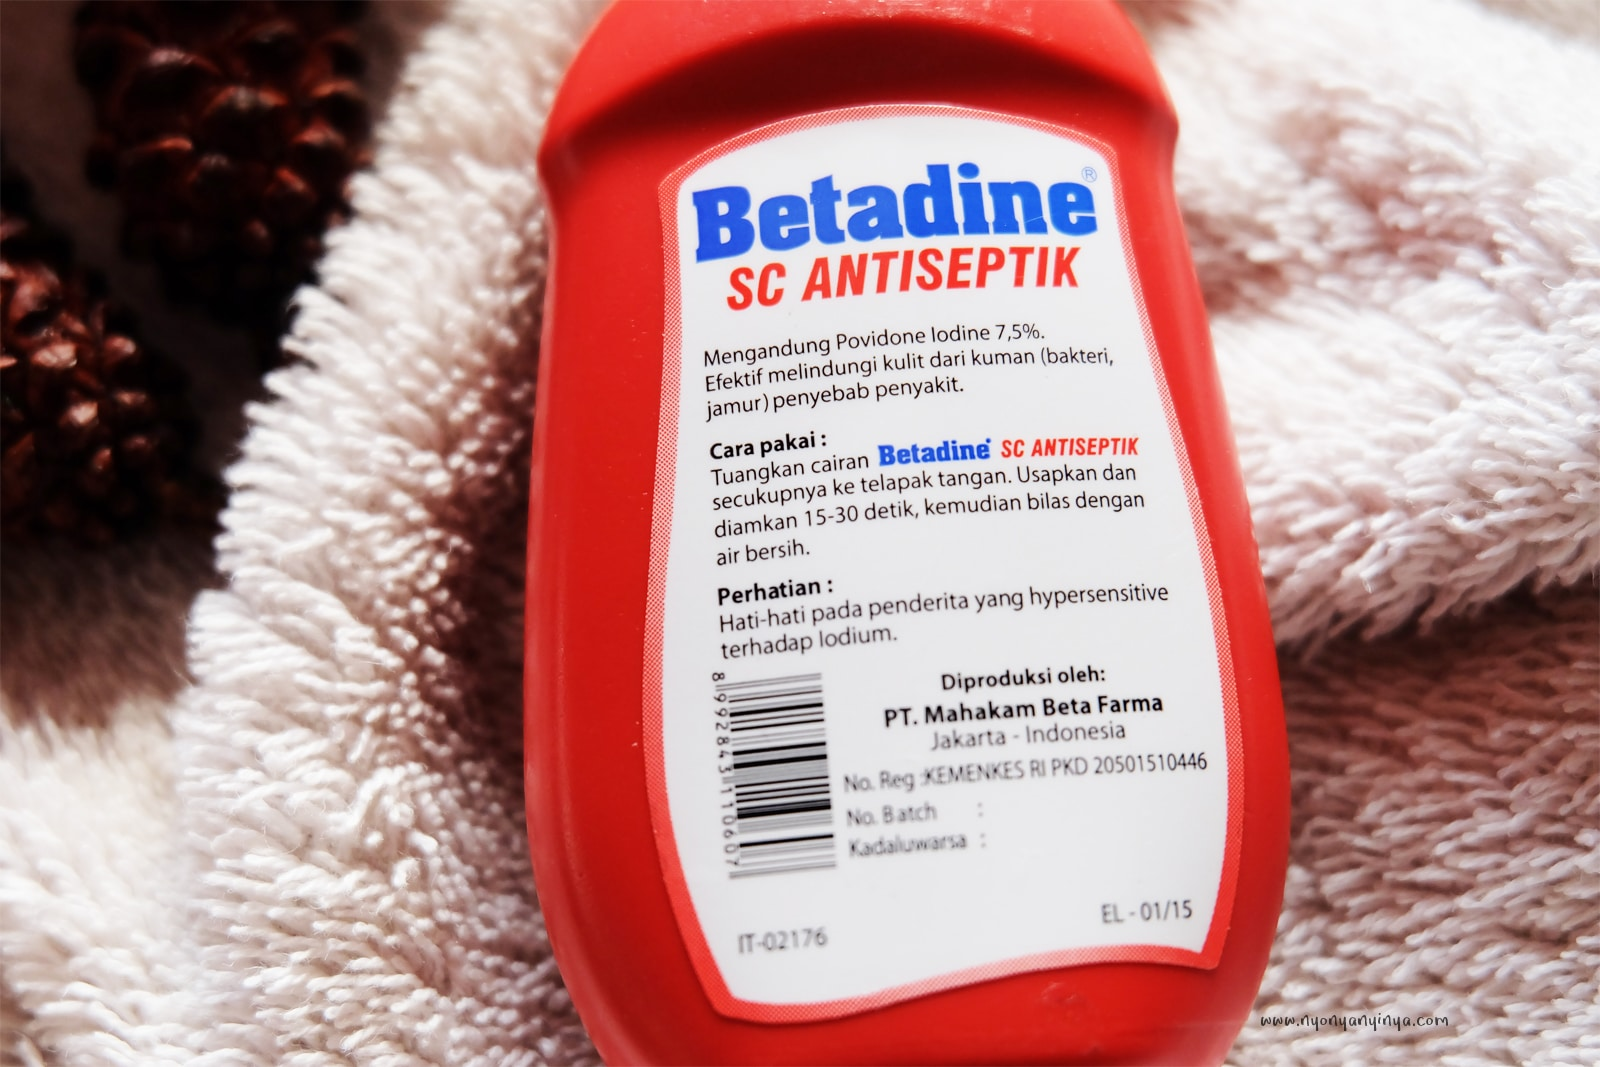 antiseptic cleaners that contain Povidone-iodine are highly effective at removing hfmd viruses